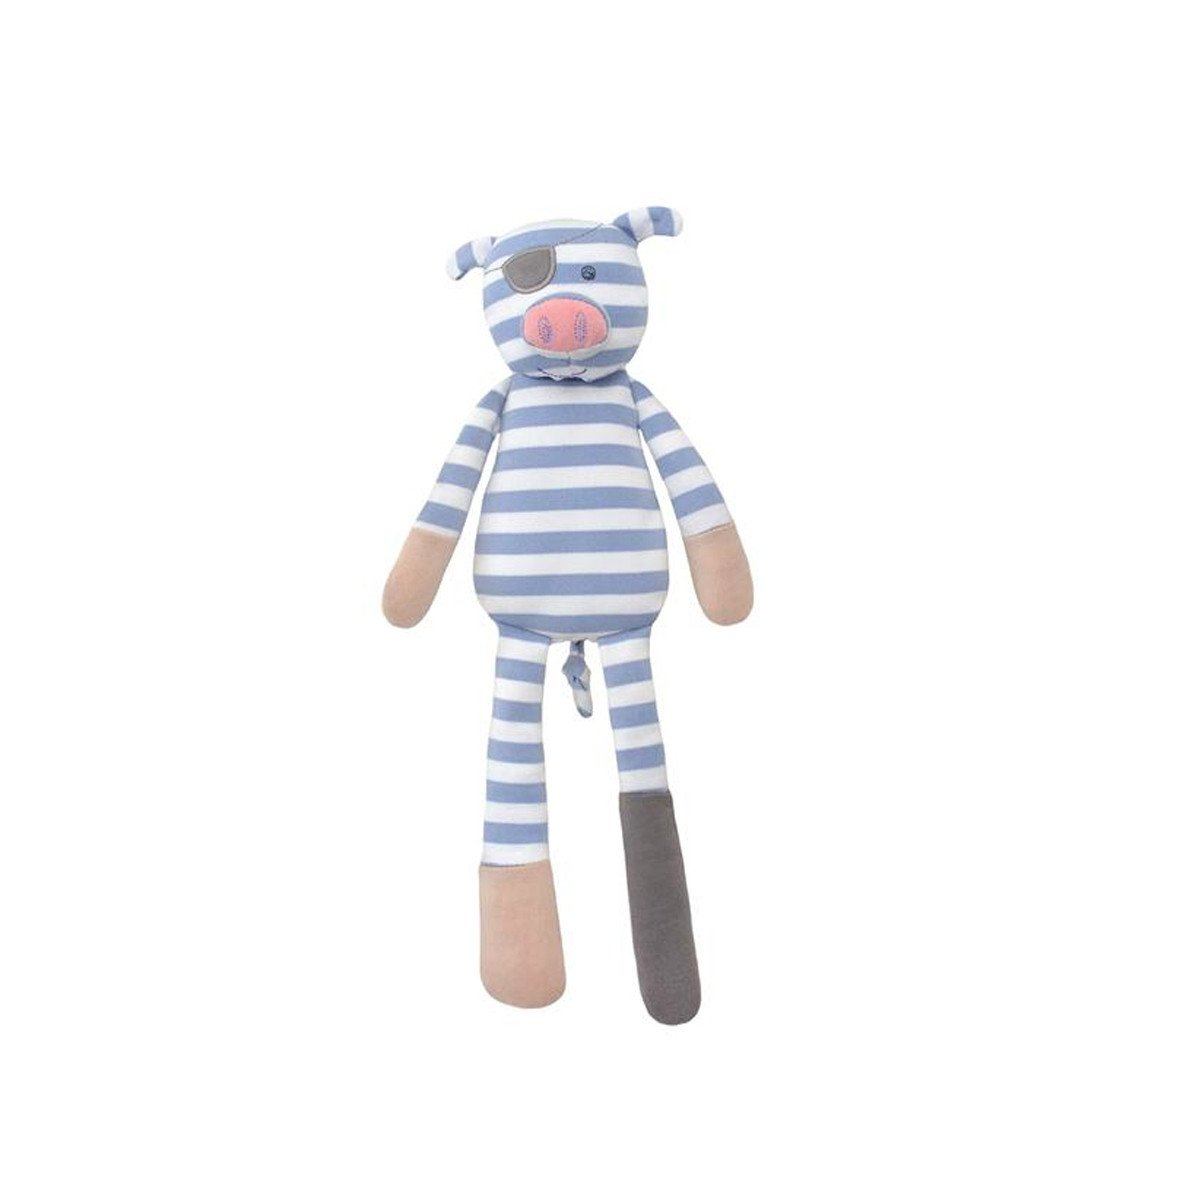 Apple Park Organic Plush Toy Apple Park Organic Baby Gifts Pirate Pig at Little Earth Nest Eco Shop